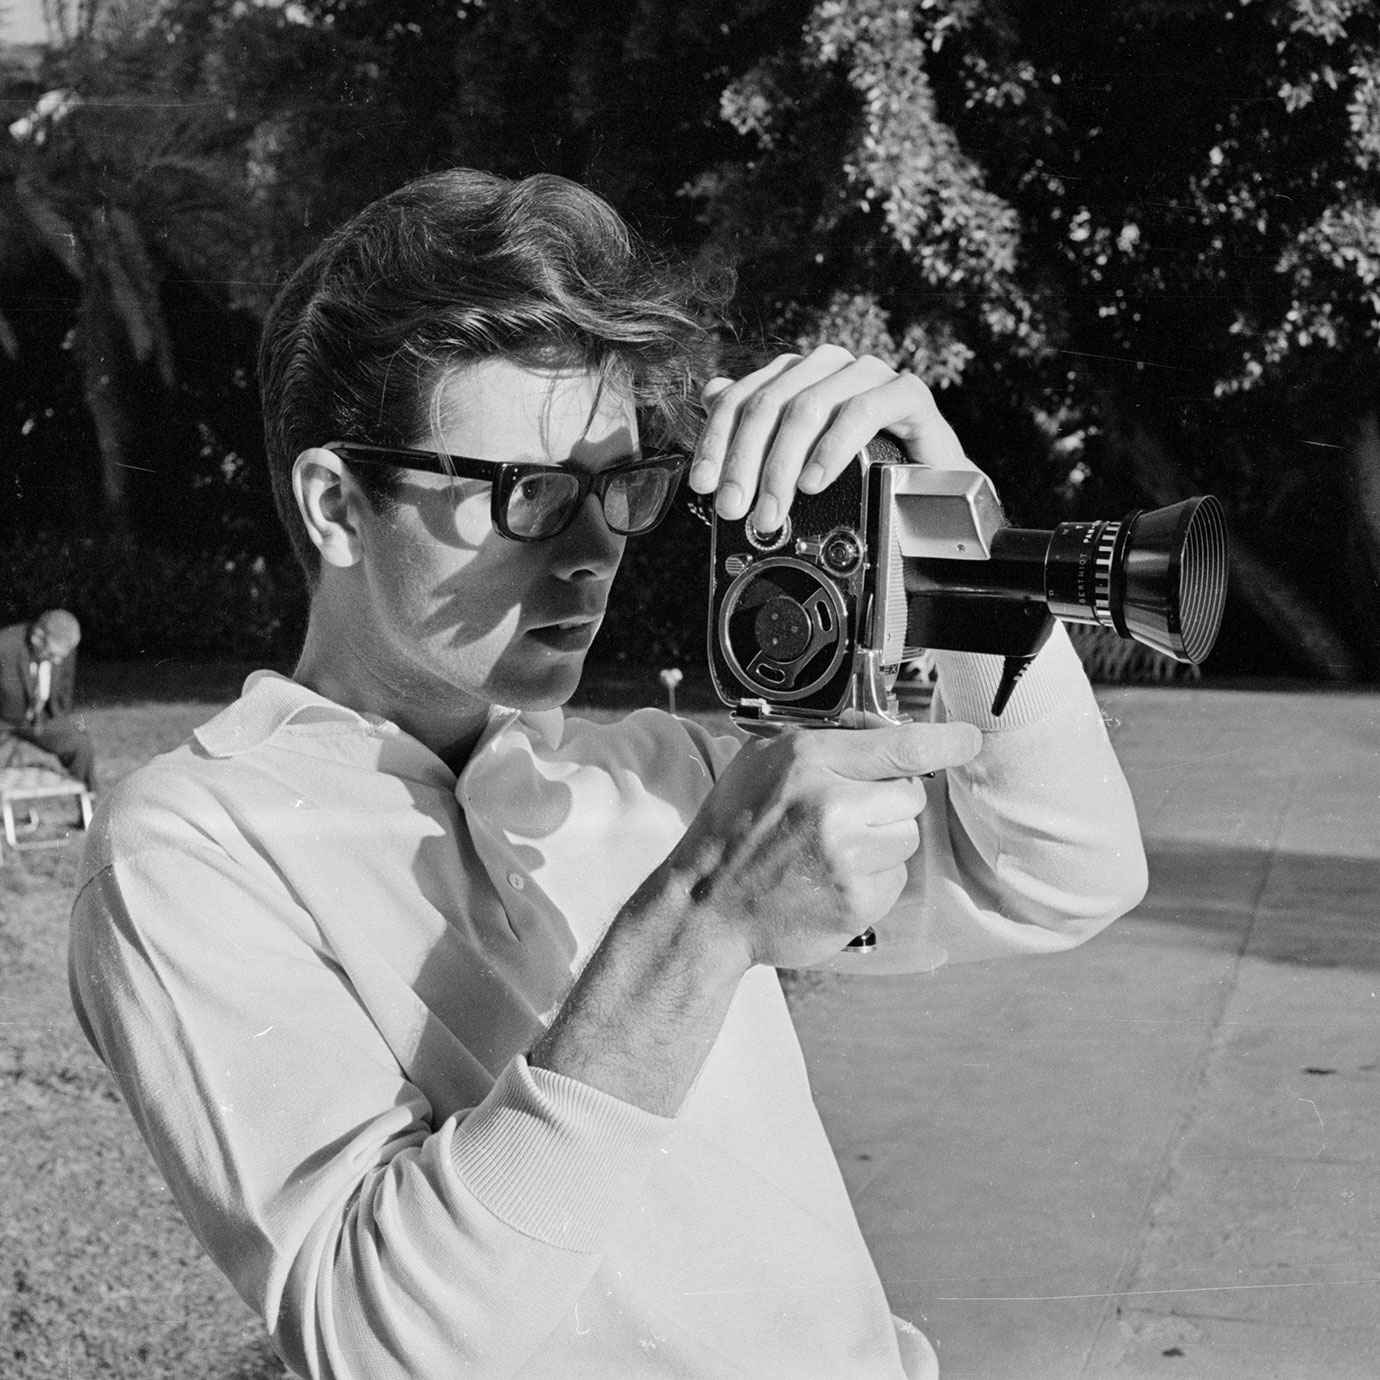 A vintage black and white photograph of a man using an old film recording camera in a garden.